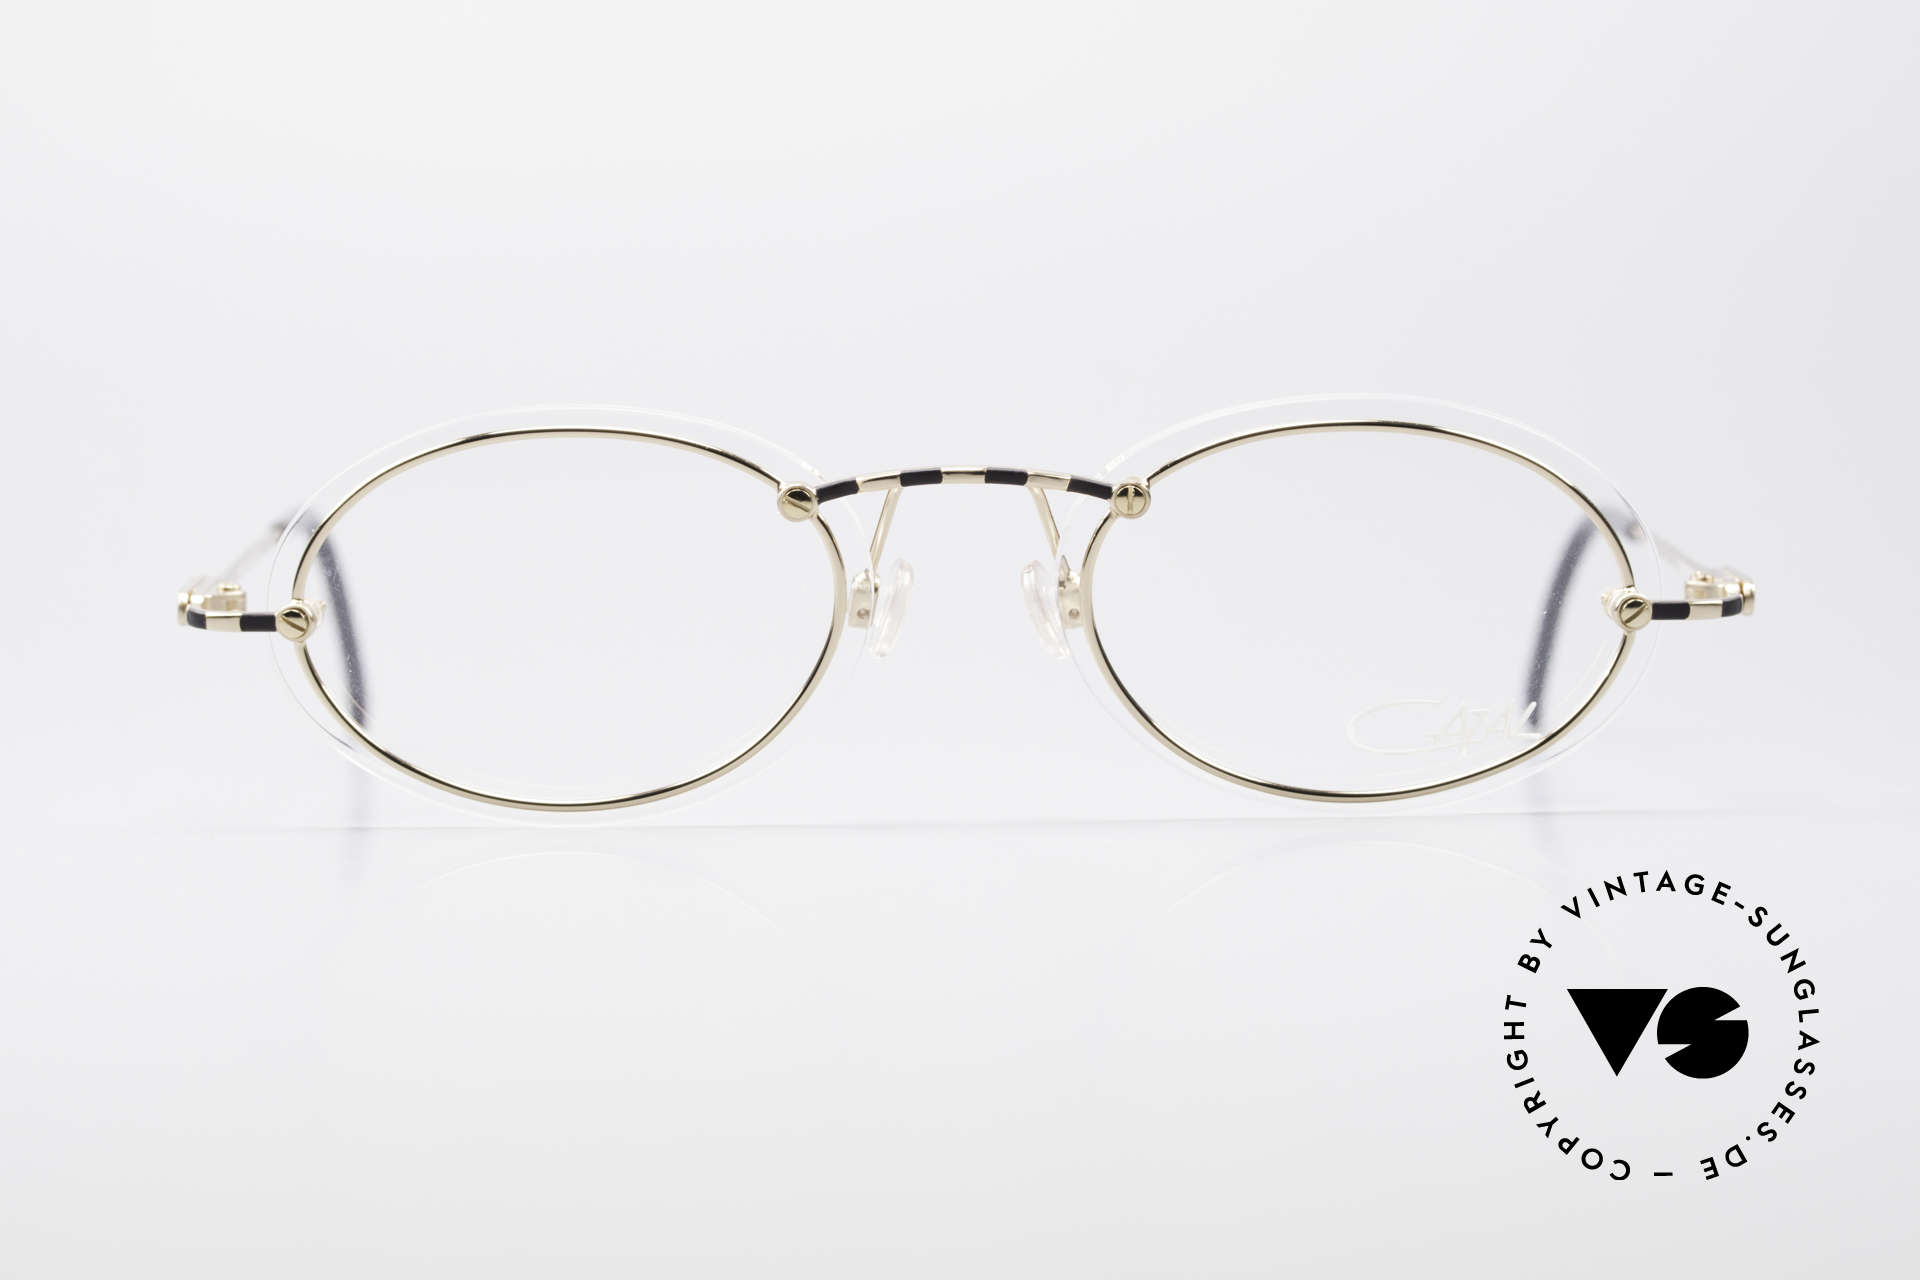 Cazal 770 90's Vintage Frame No Retro, thin metal frame with interesting lens mounting, Made for Men and Women